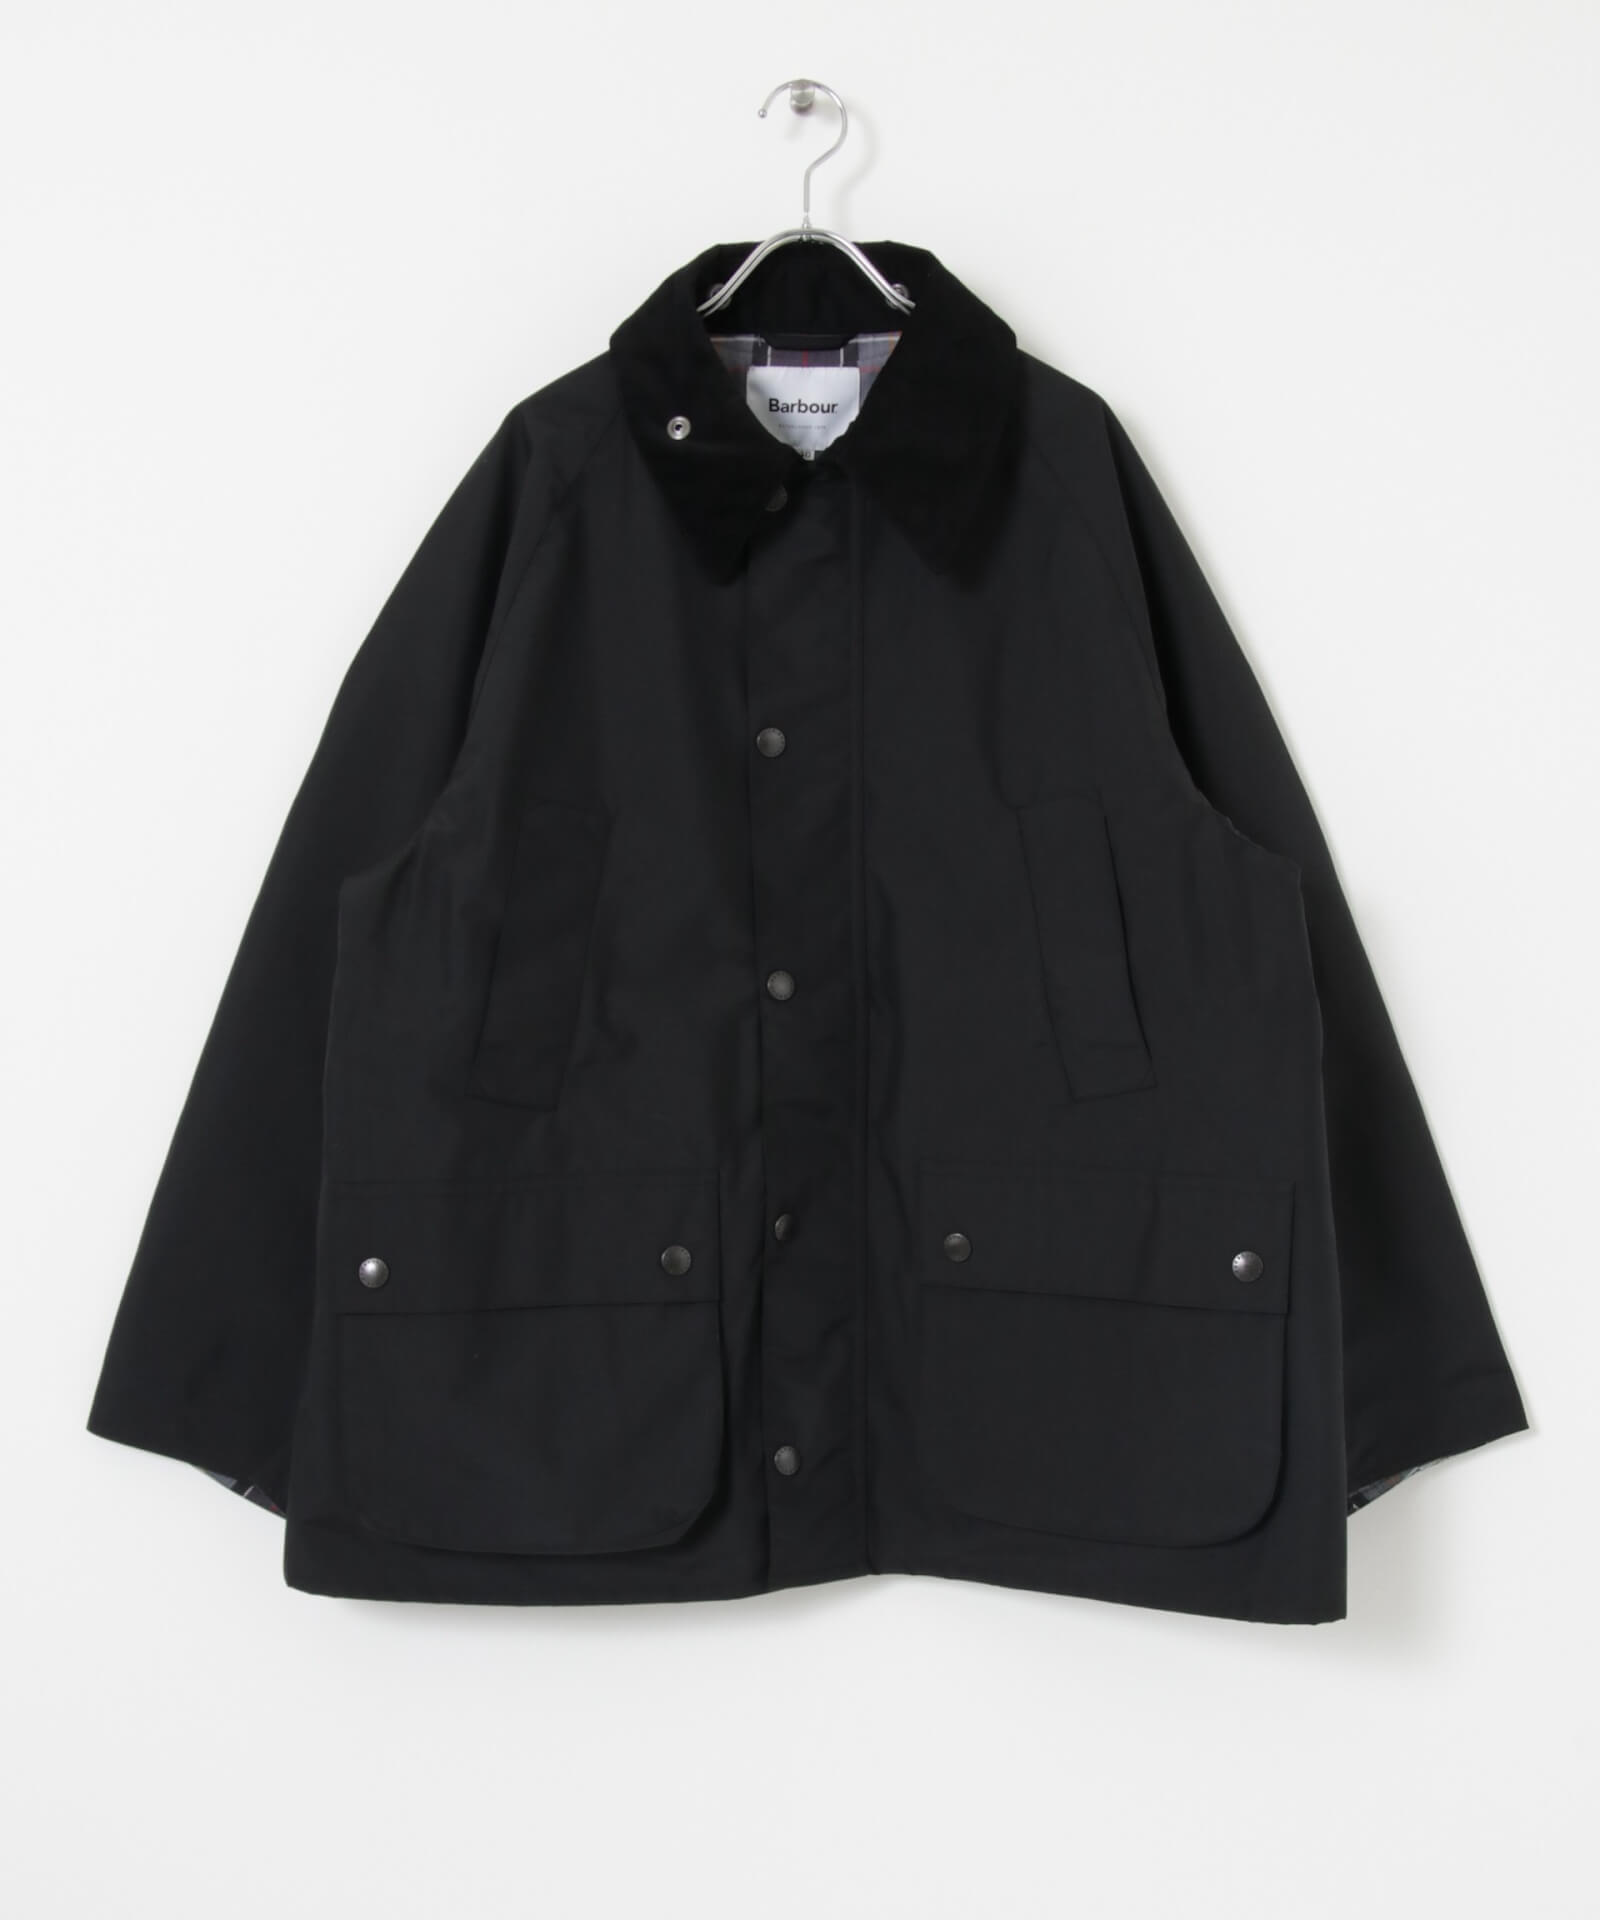 BarbourとworkahoLCのコラボアイテムが発売決定!OVER SIZE BEDALEモデルのジャケットが登場 life210913_urbs_barbour_2